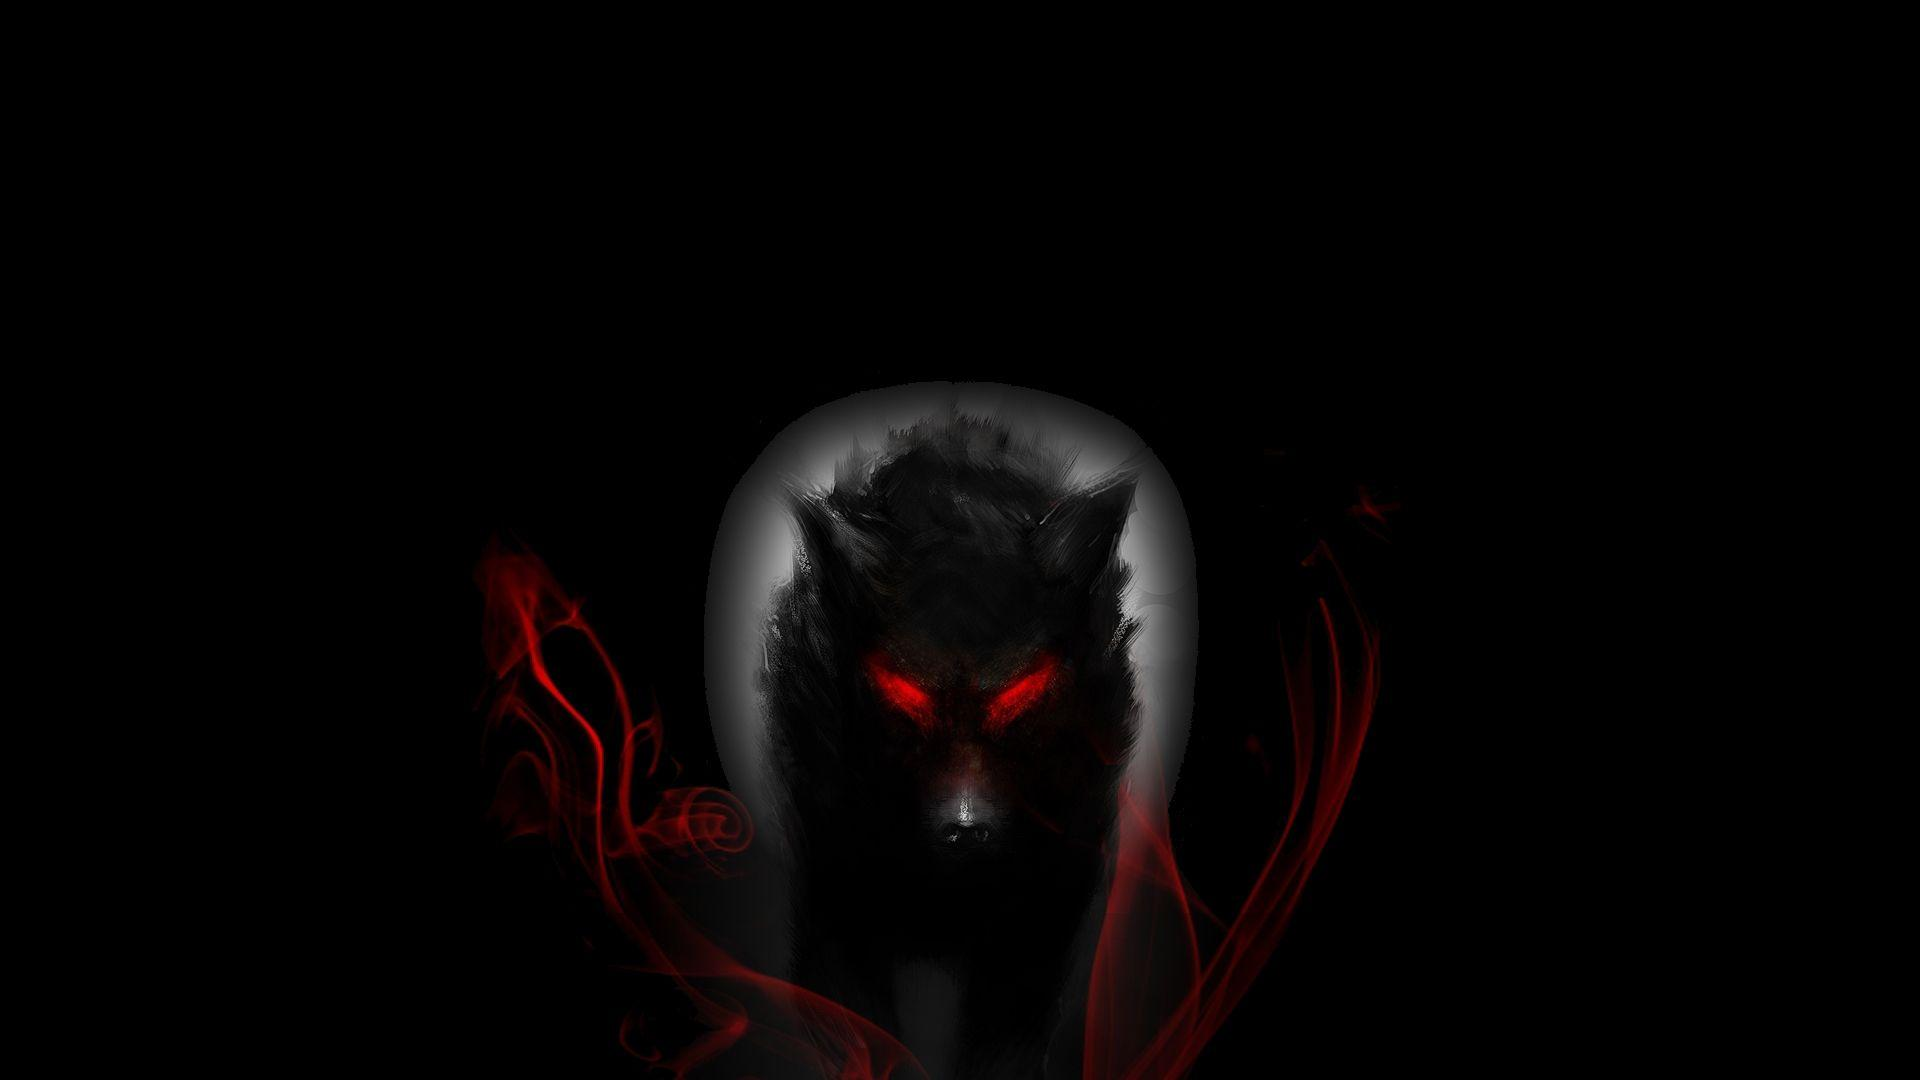 Neon Wolf Wallpapers - Wallpaper Cave